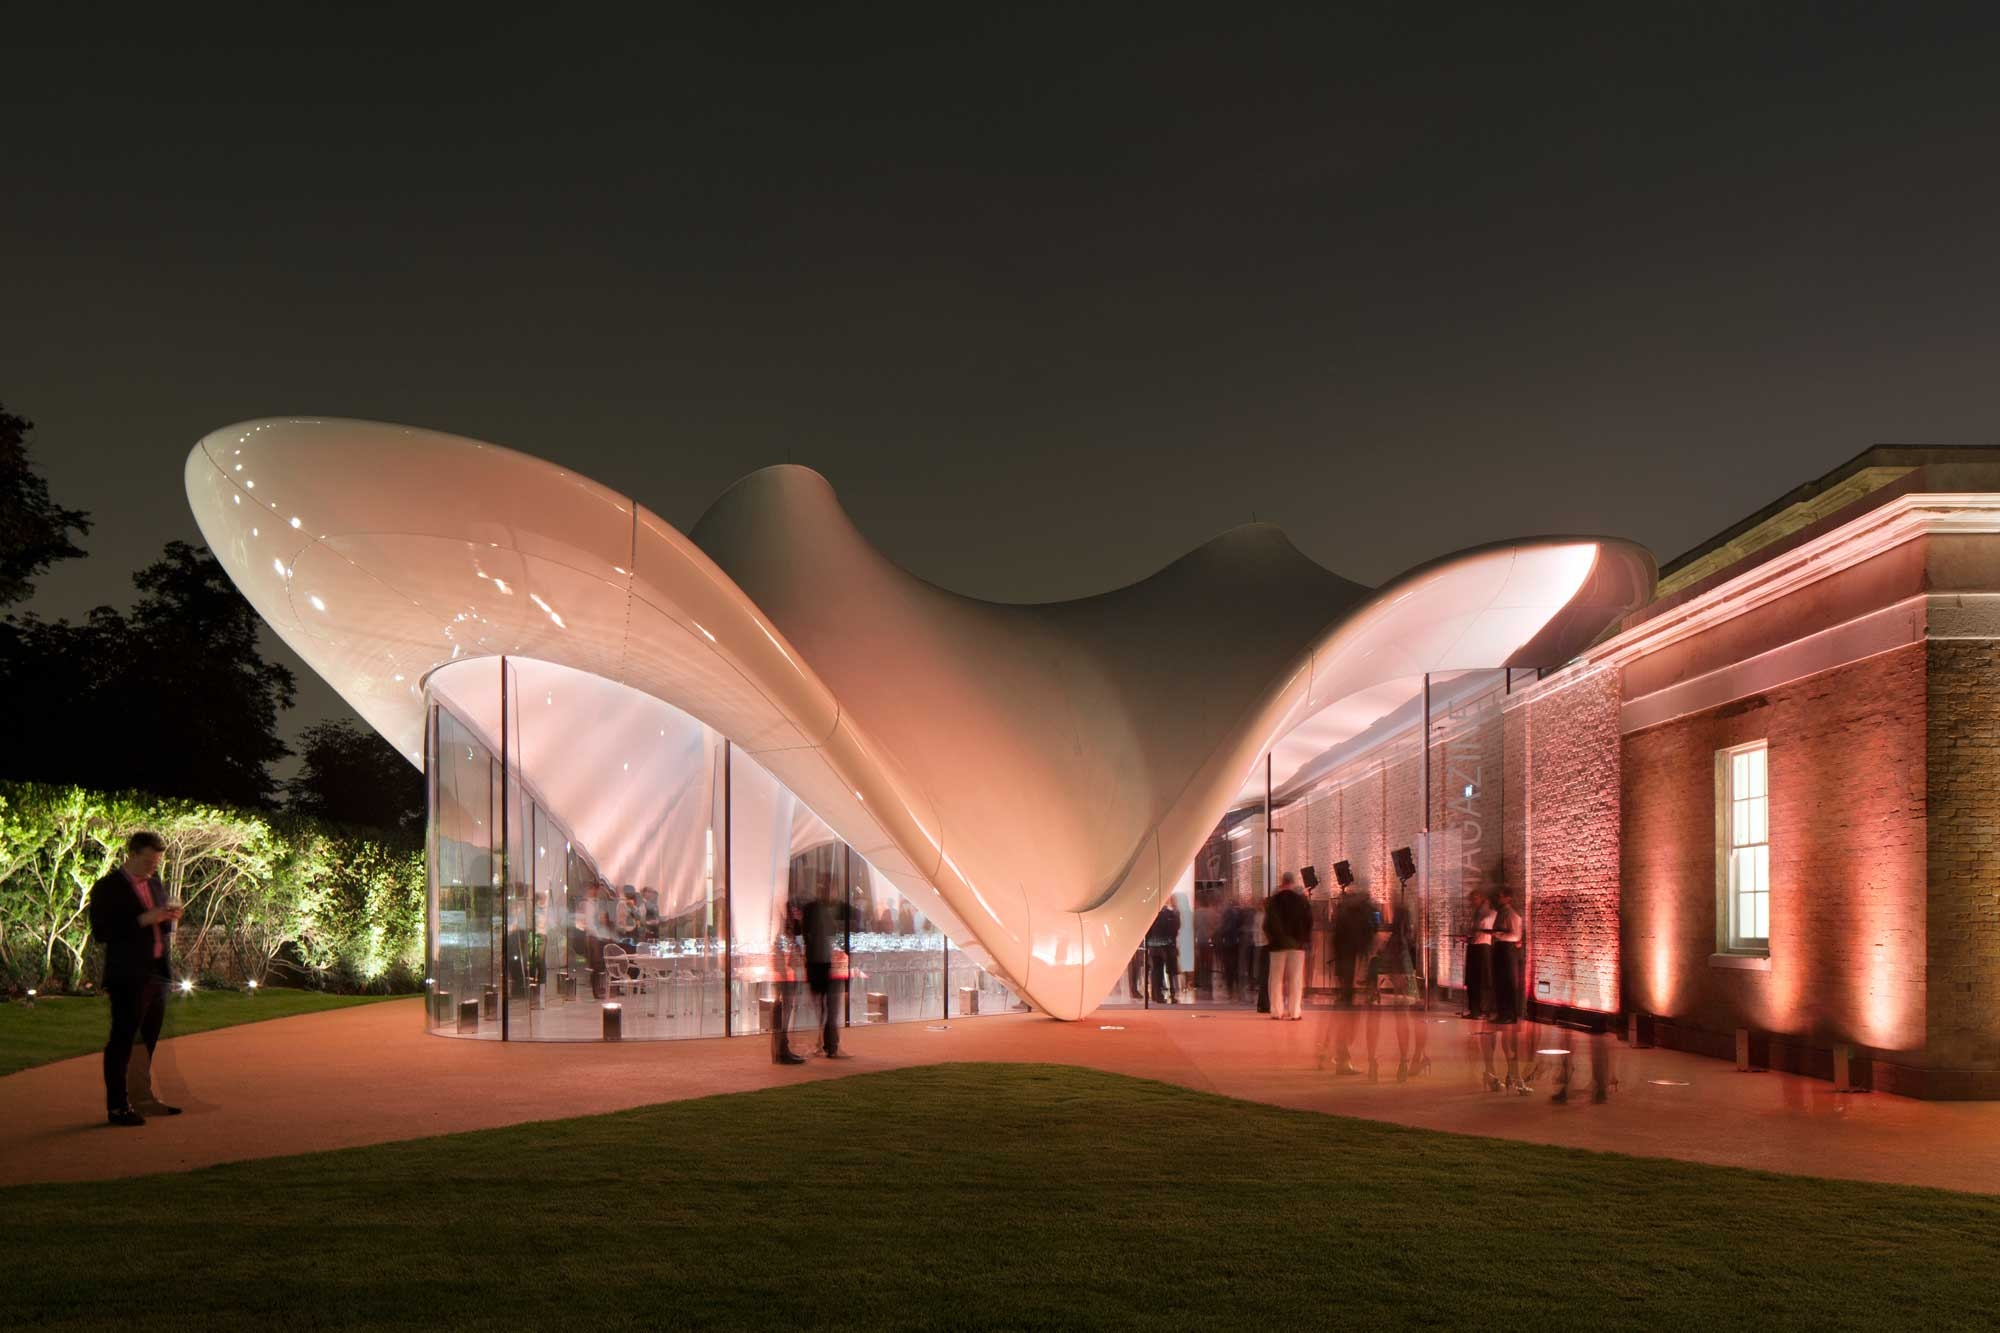 20 Serpentine Sackler Gallery London 2000x1333 c